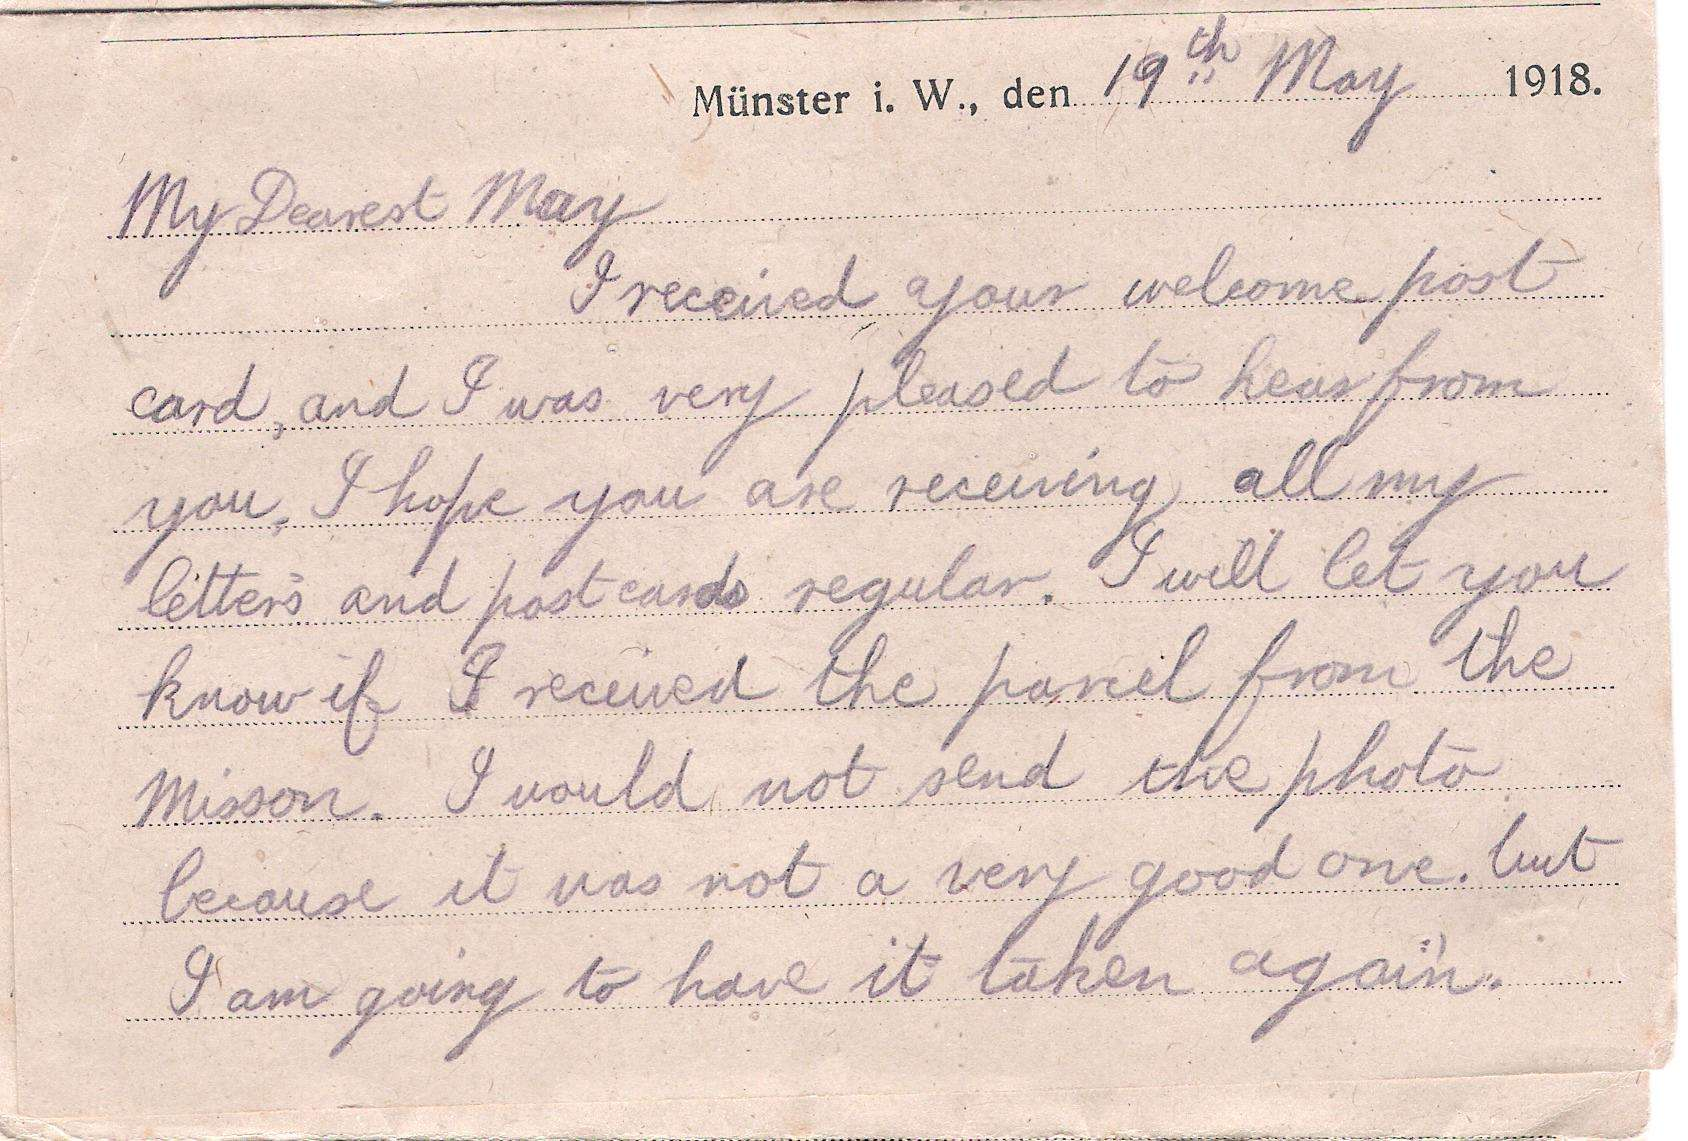 Charles William Clarke Letter 19th May 1918